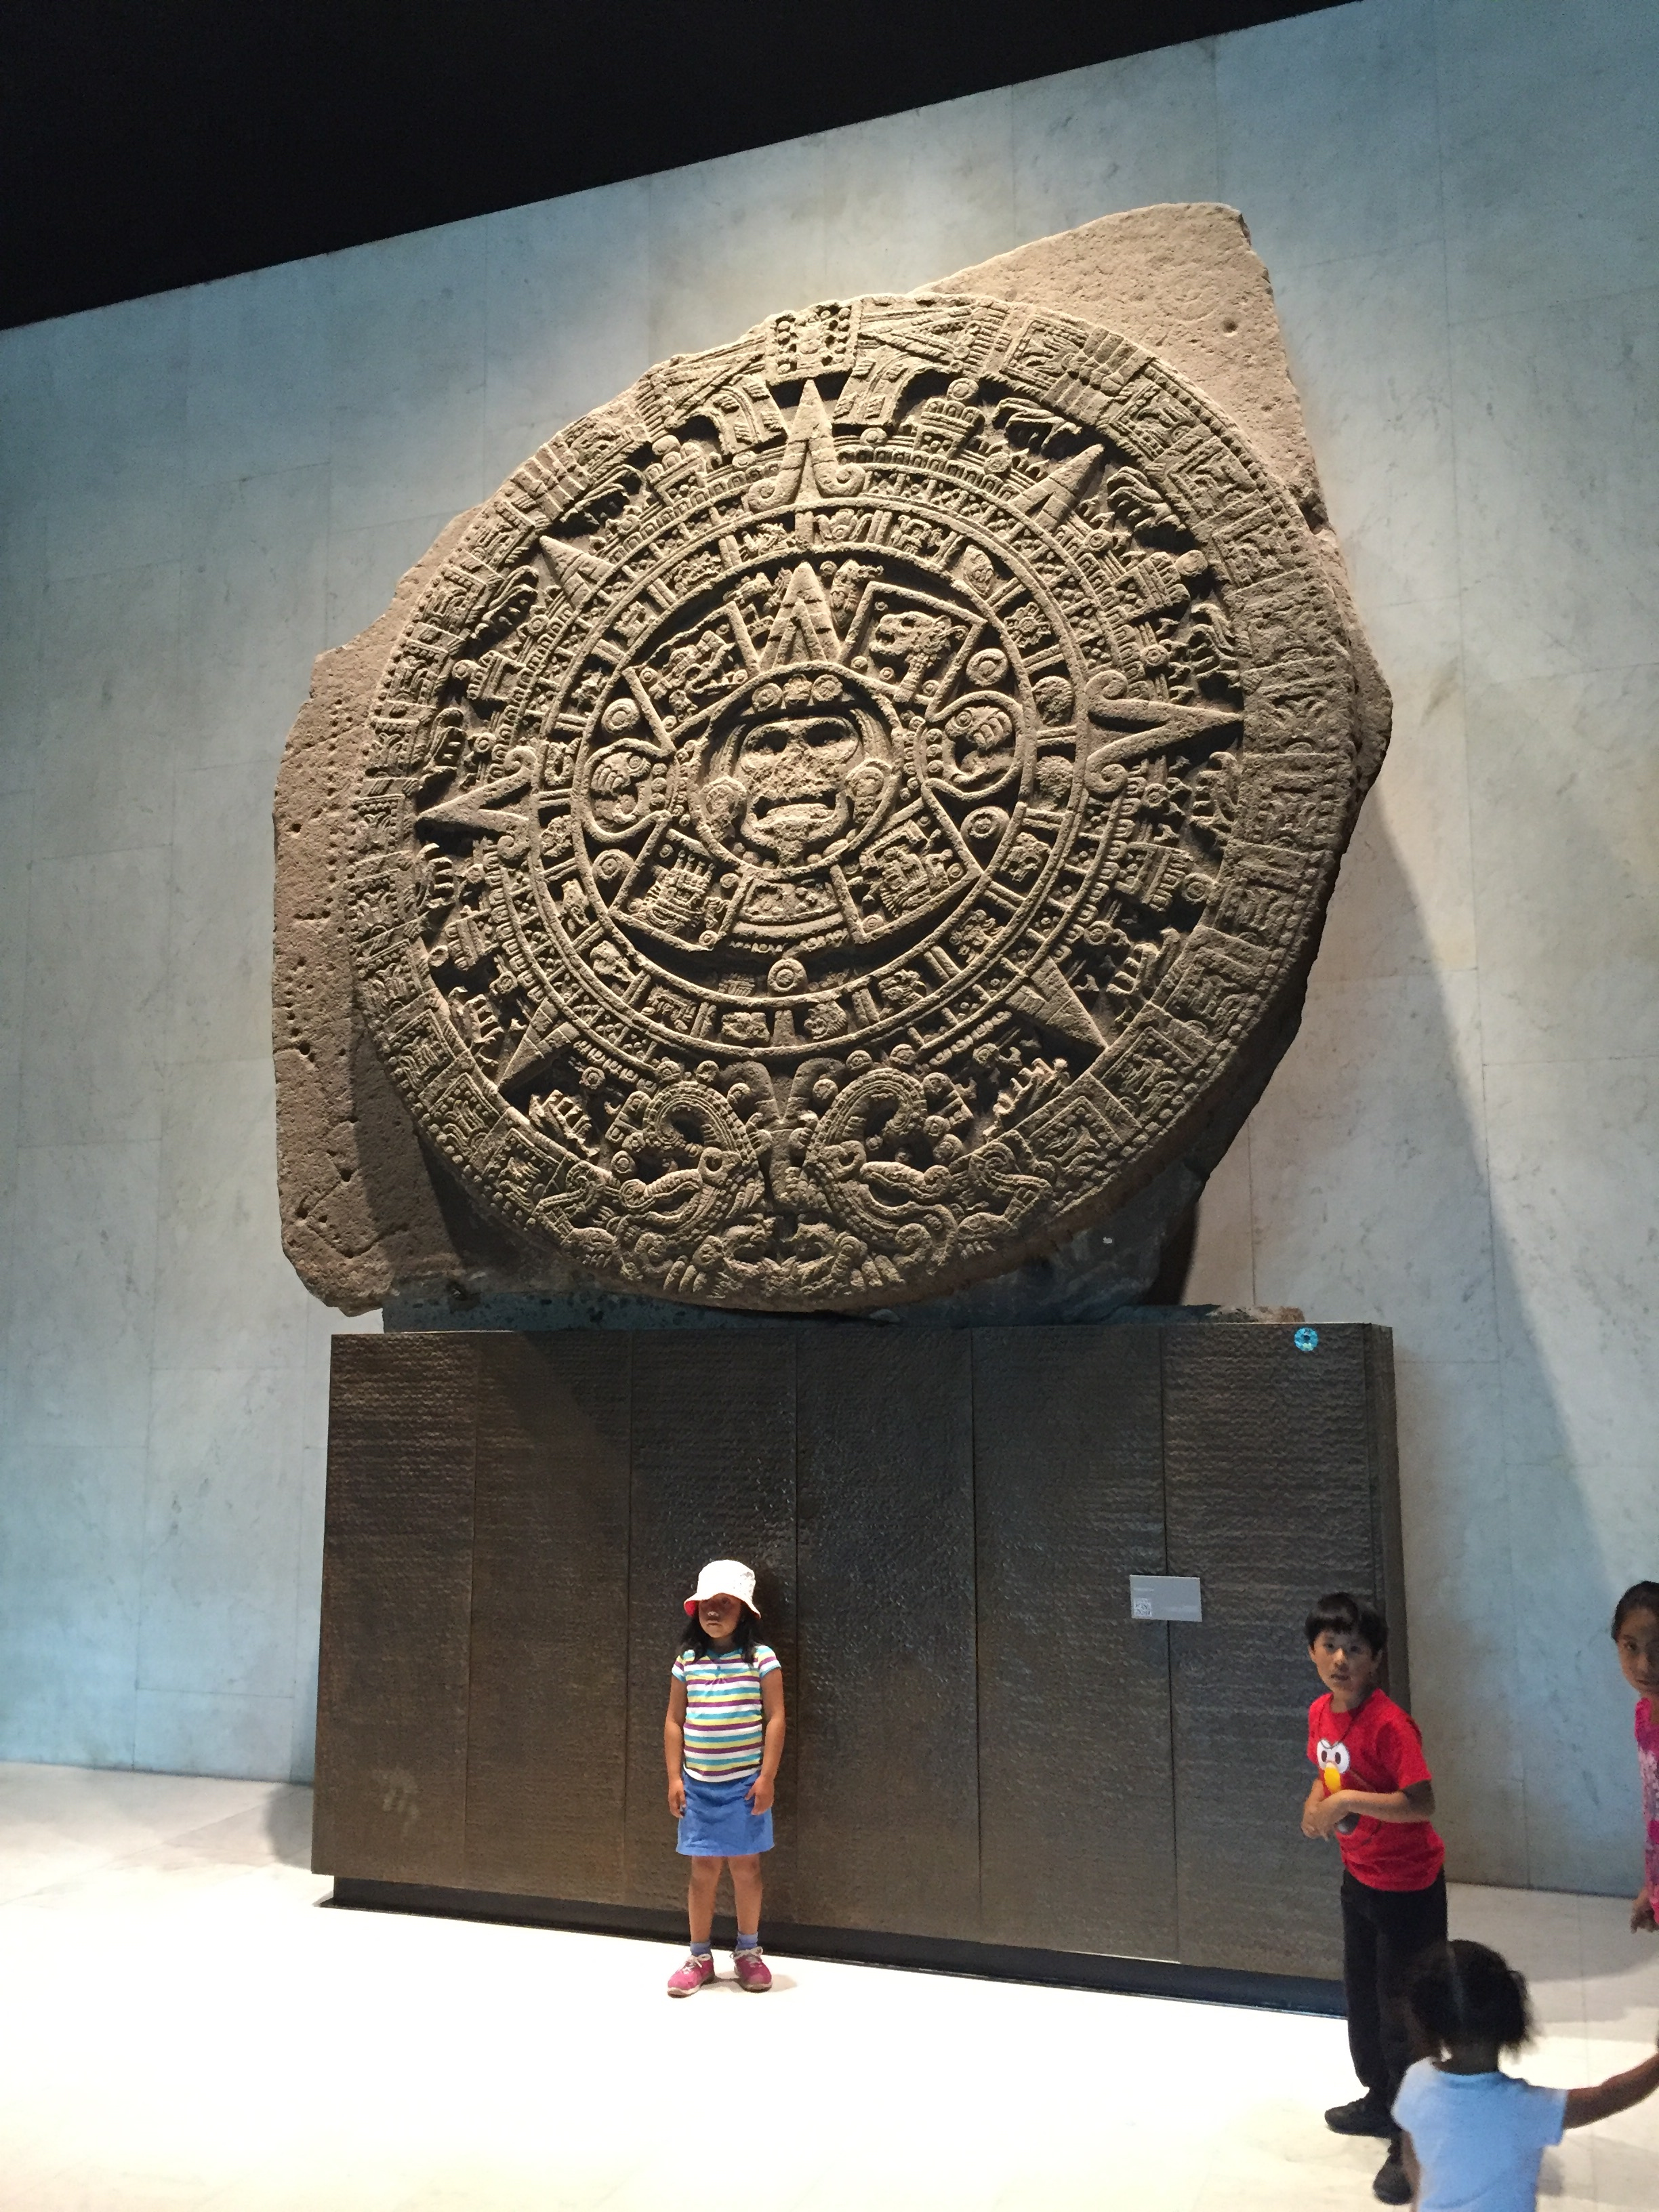 Children pose for photos in front of the Aztec calendar in the Anthropology Museum of Mexico City.